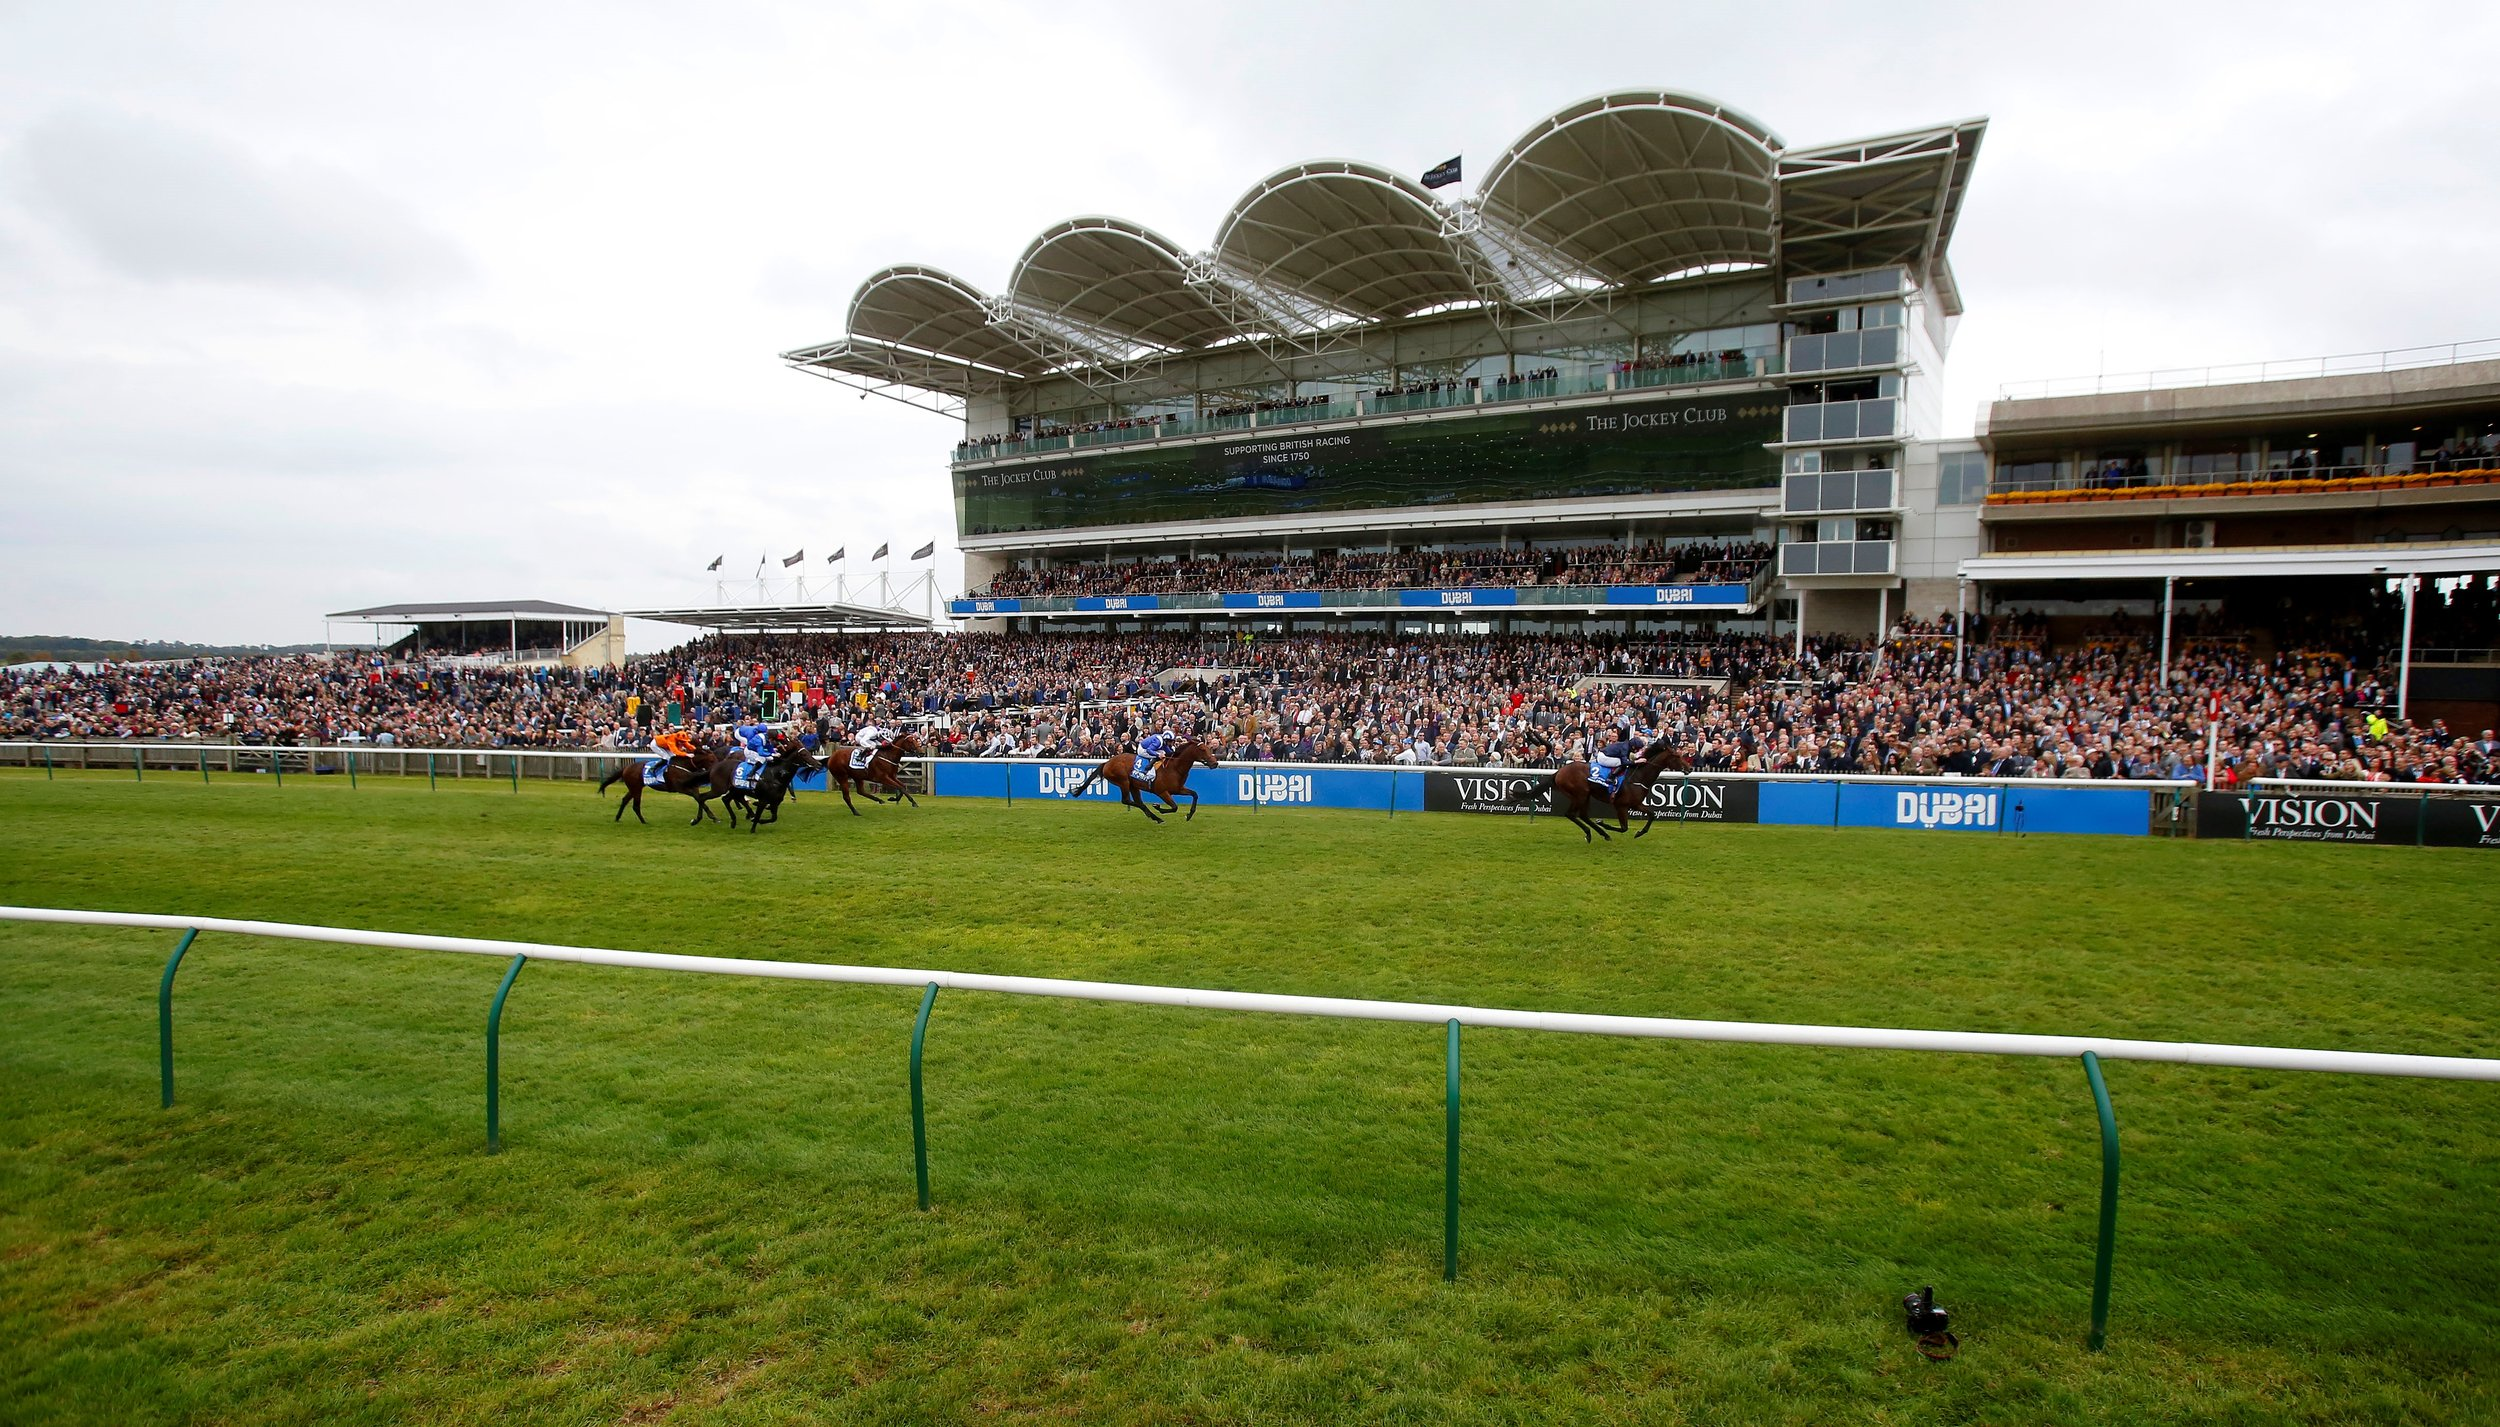 Copy of Newmarket - Future Champions Day.jpg